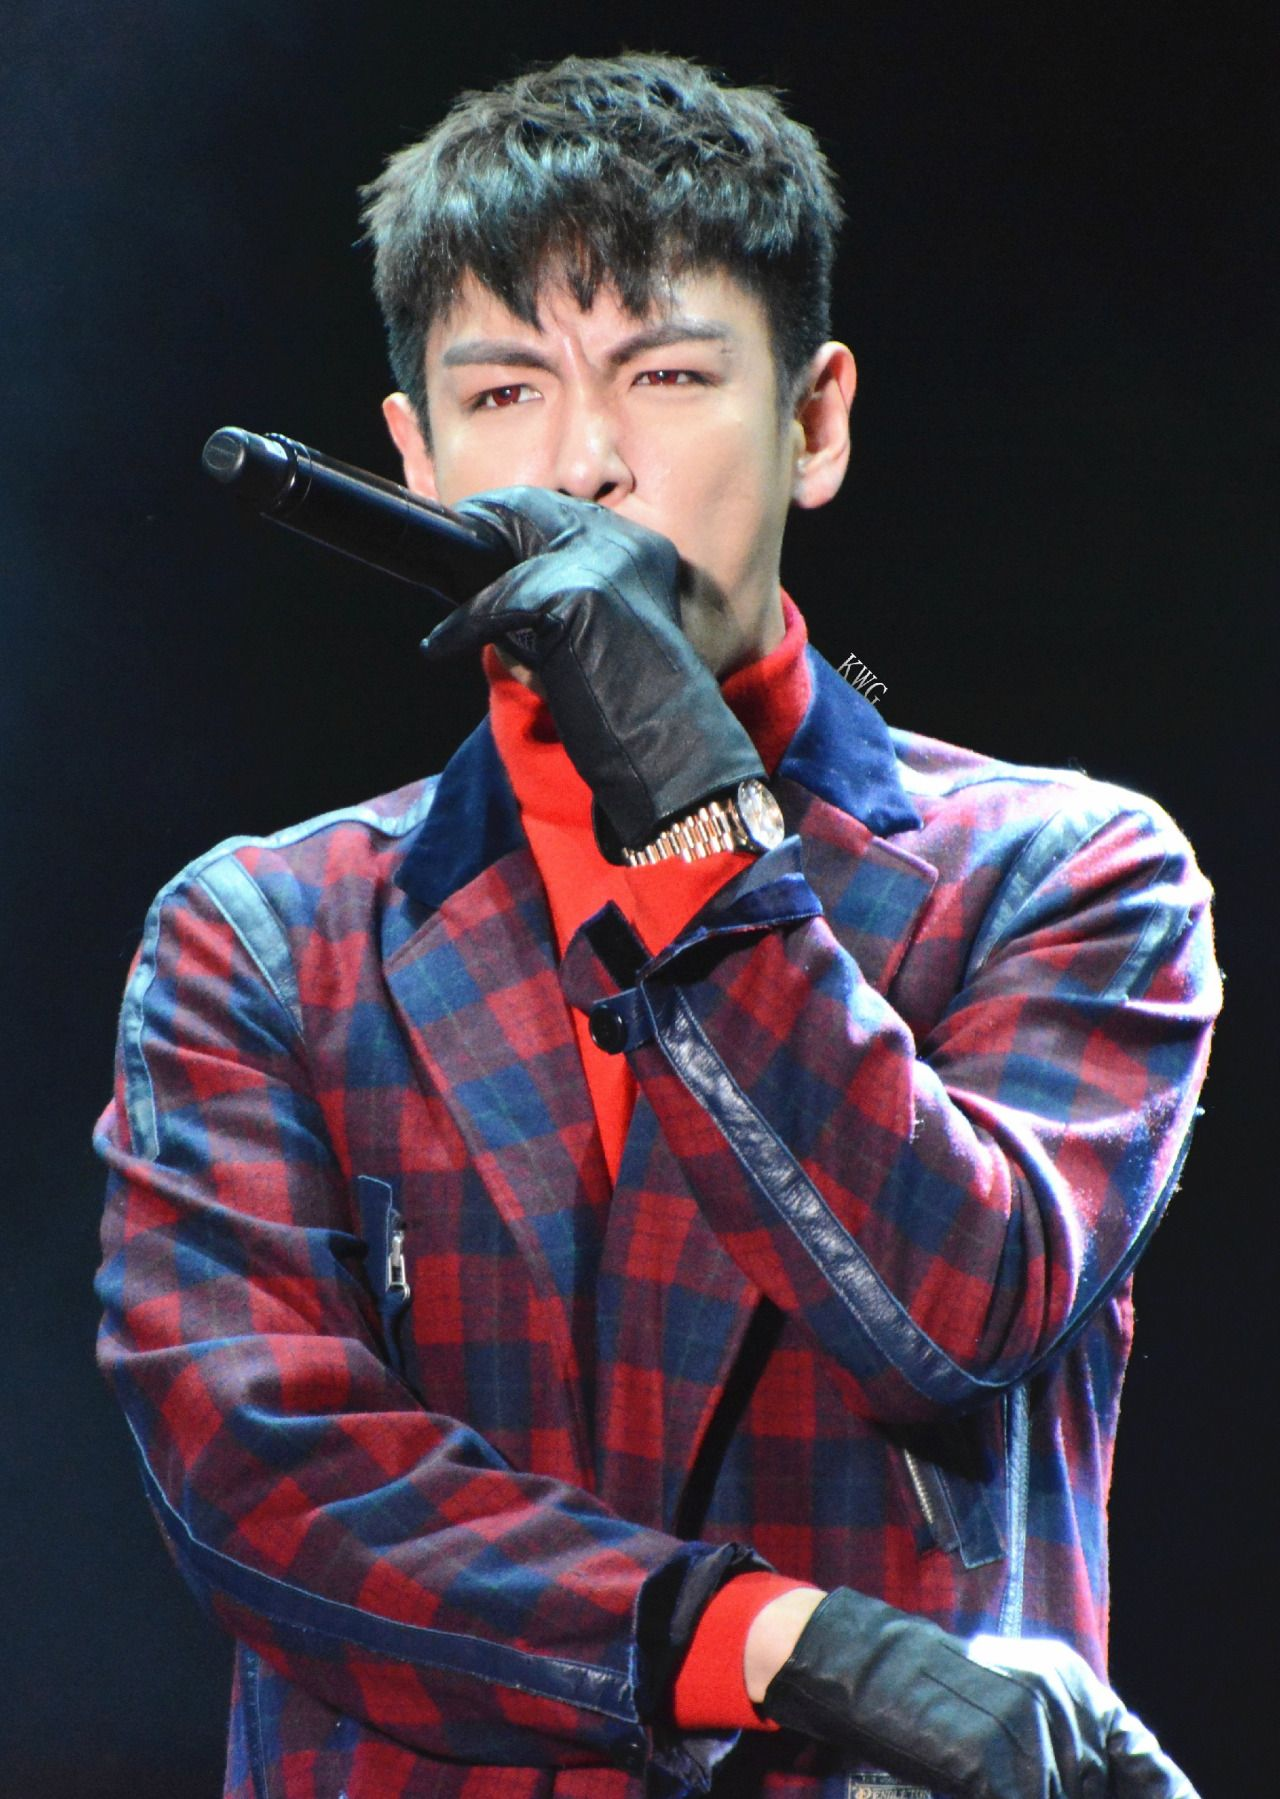 160325 TOP - VIP Fan Meeting in Nanchang